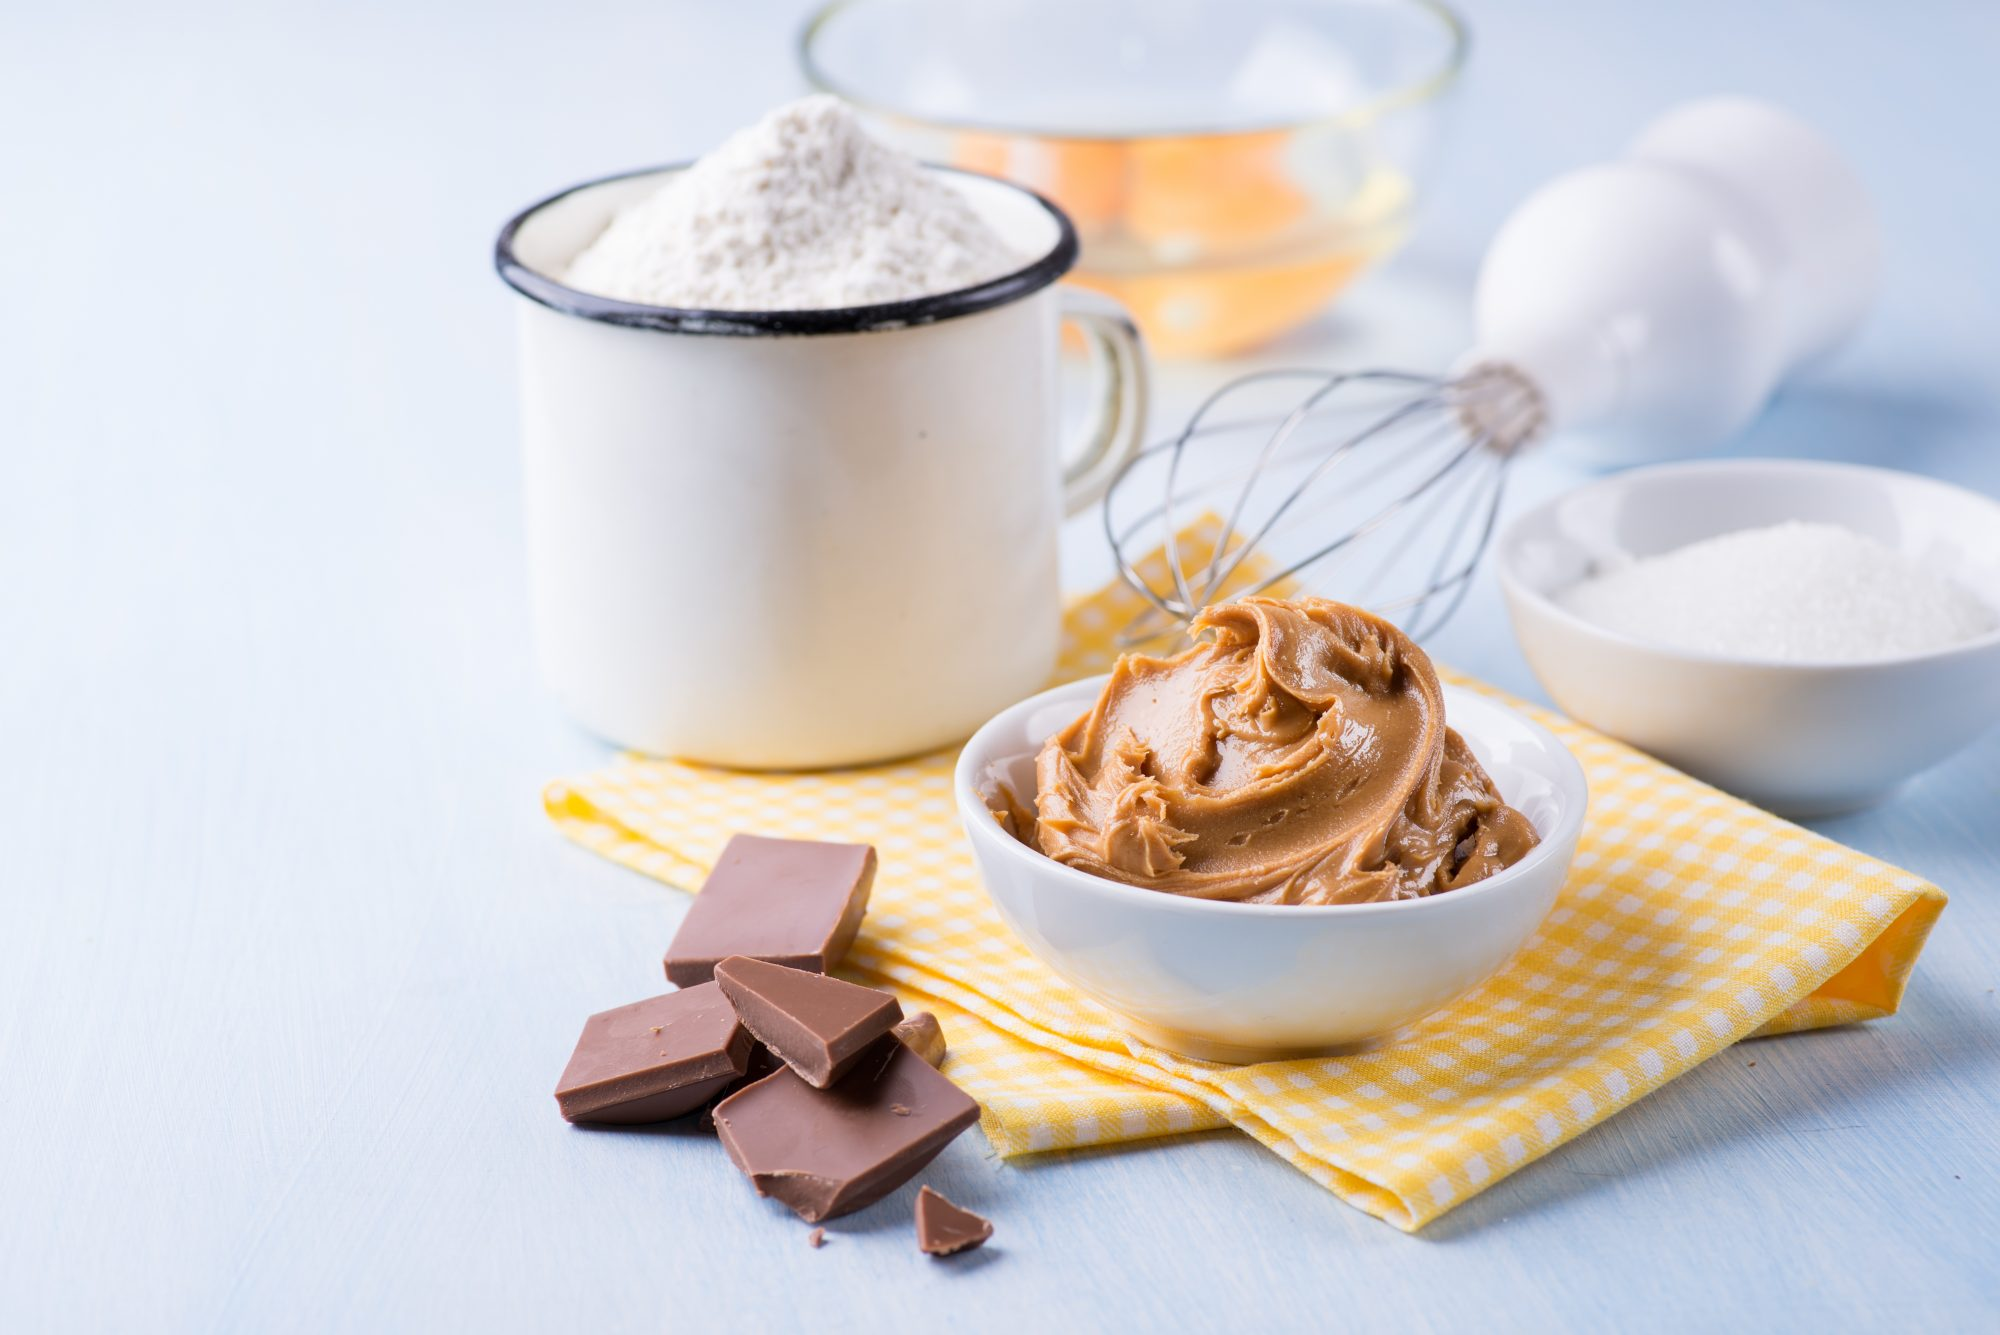 Peanut Butter Egg Ingredients